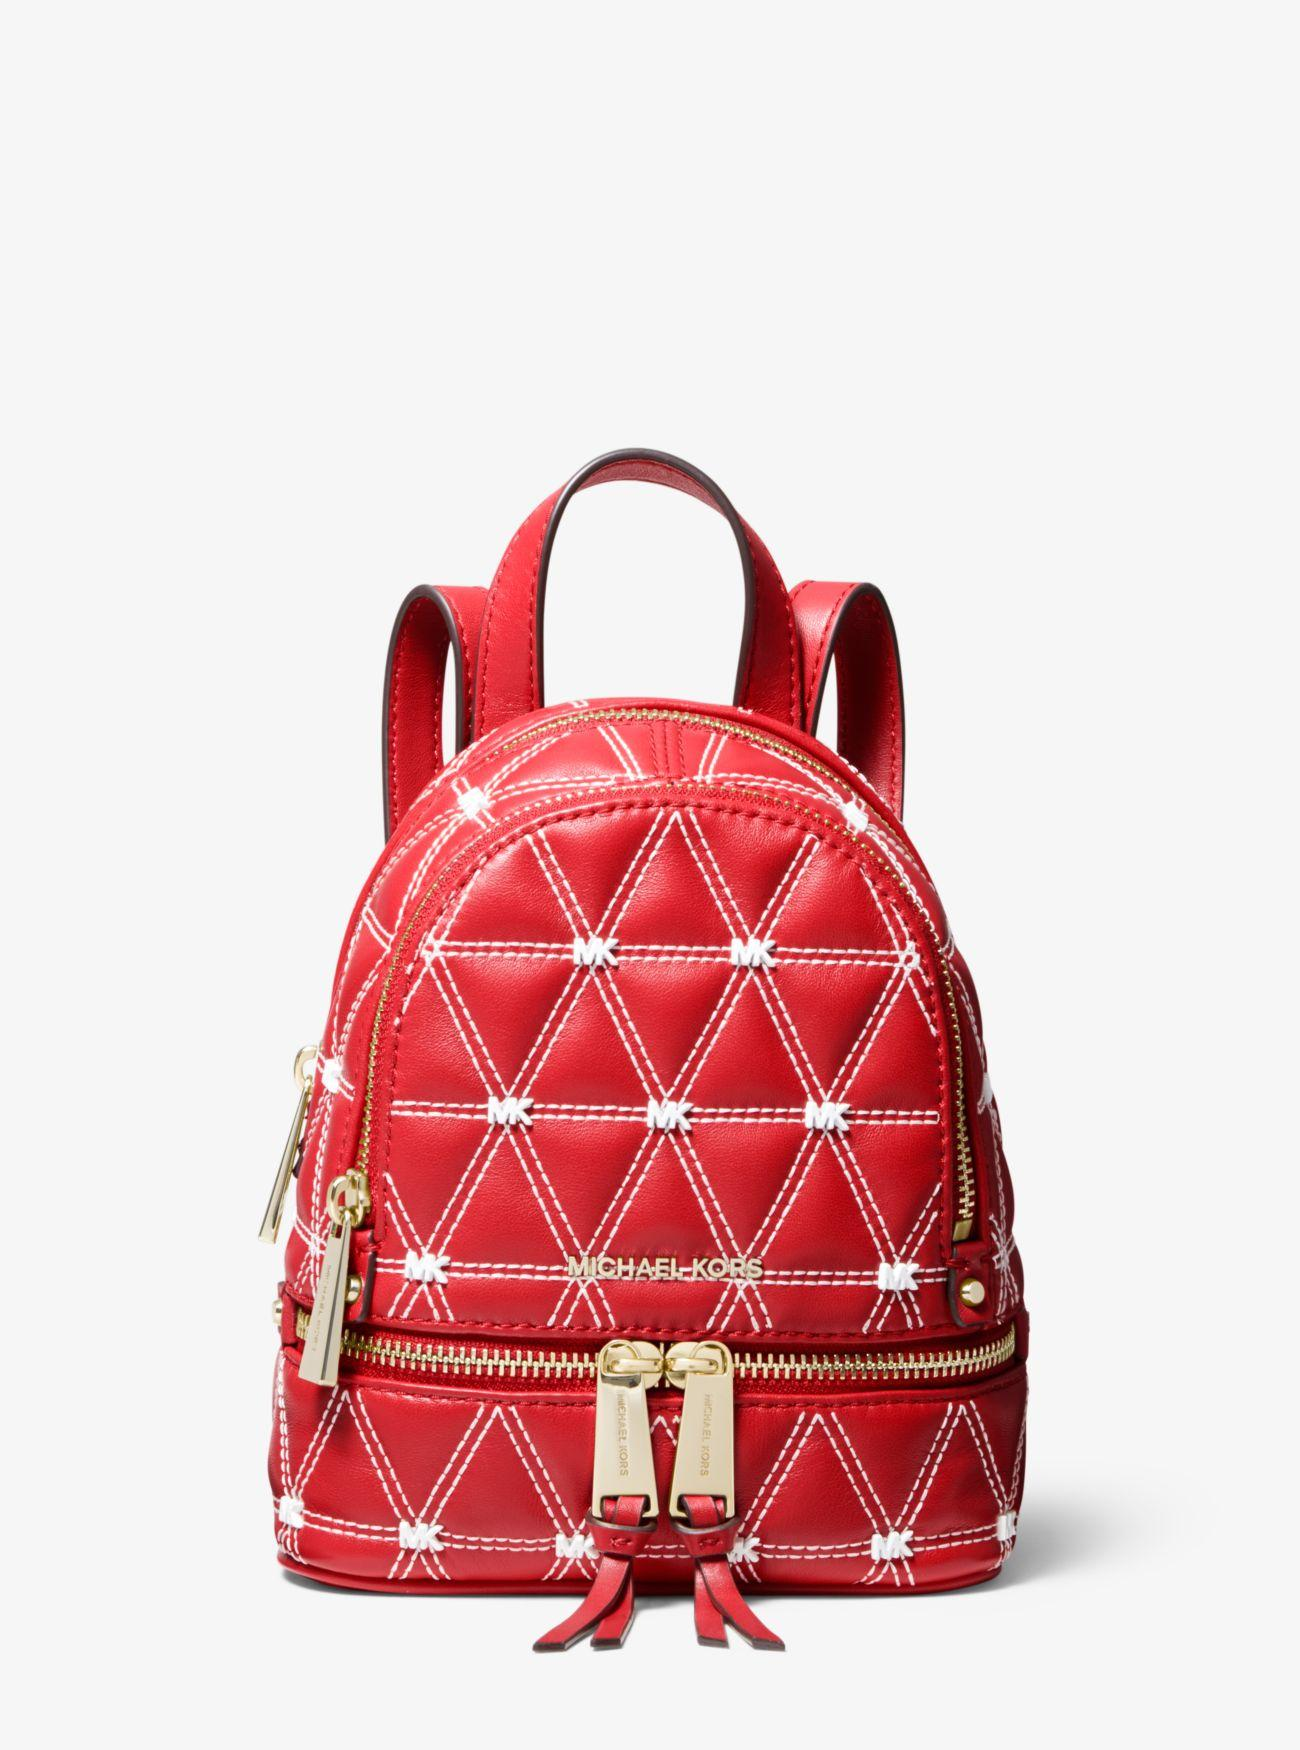 a91e162f611c Michael Kors - Red Rhea Mini Quilted Leather Backpack - Lyst. View  fullscreen